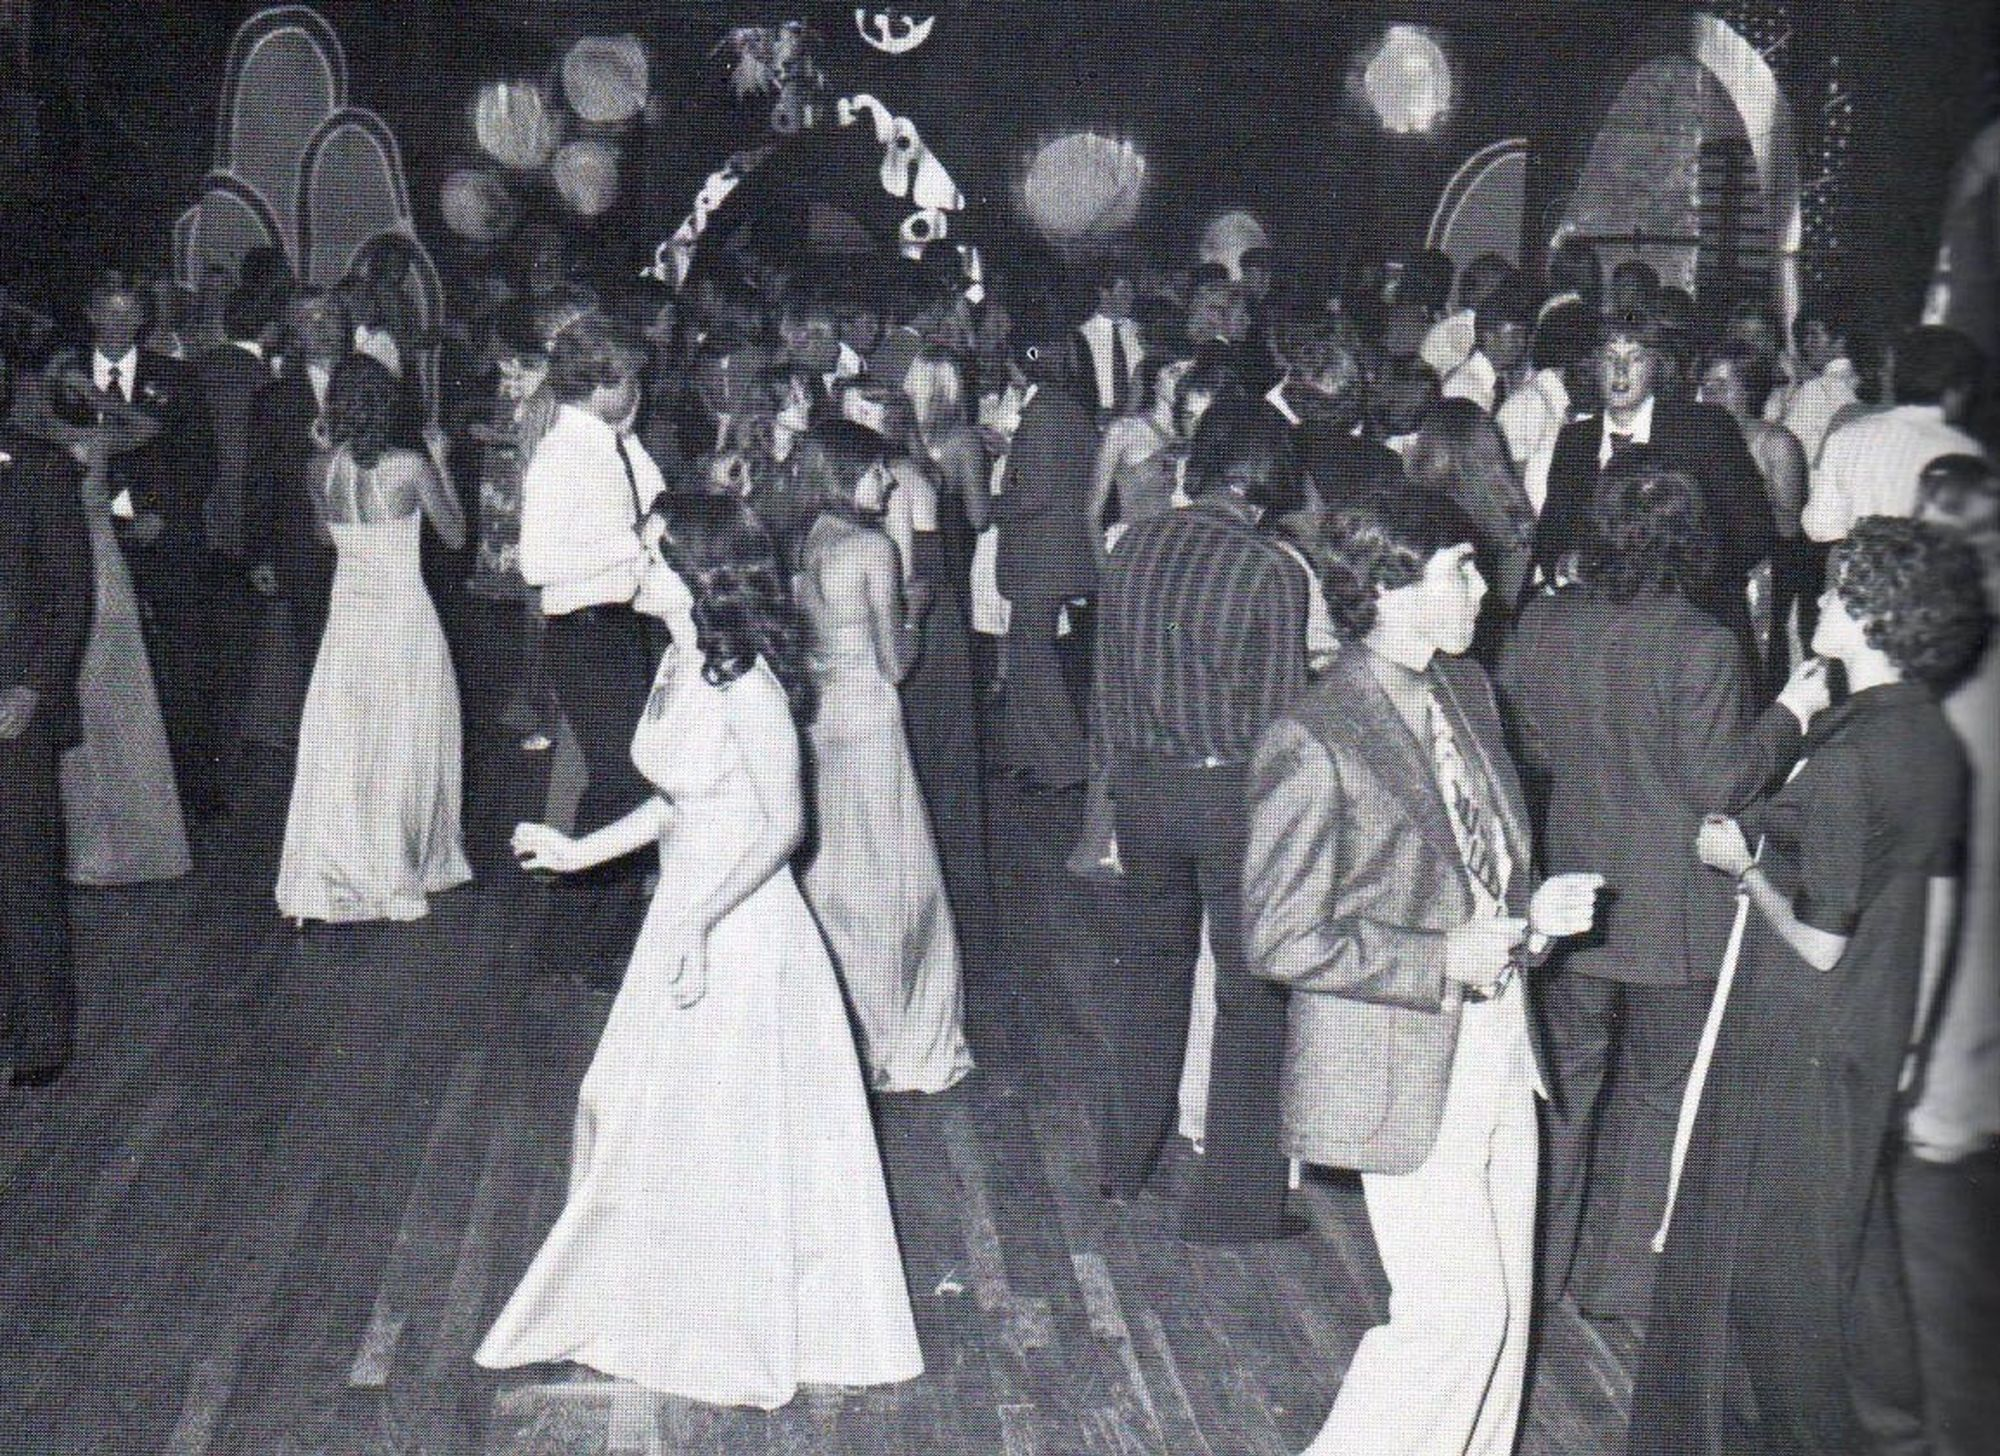 Still the venue for the matric dance in 1976